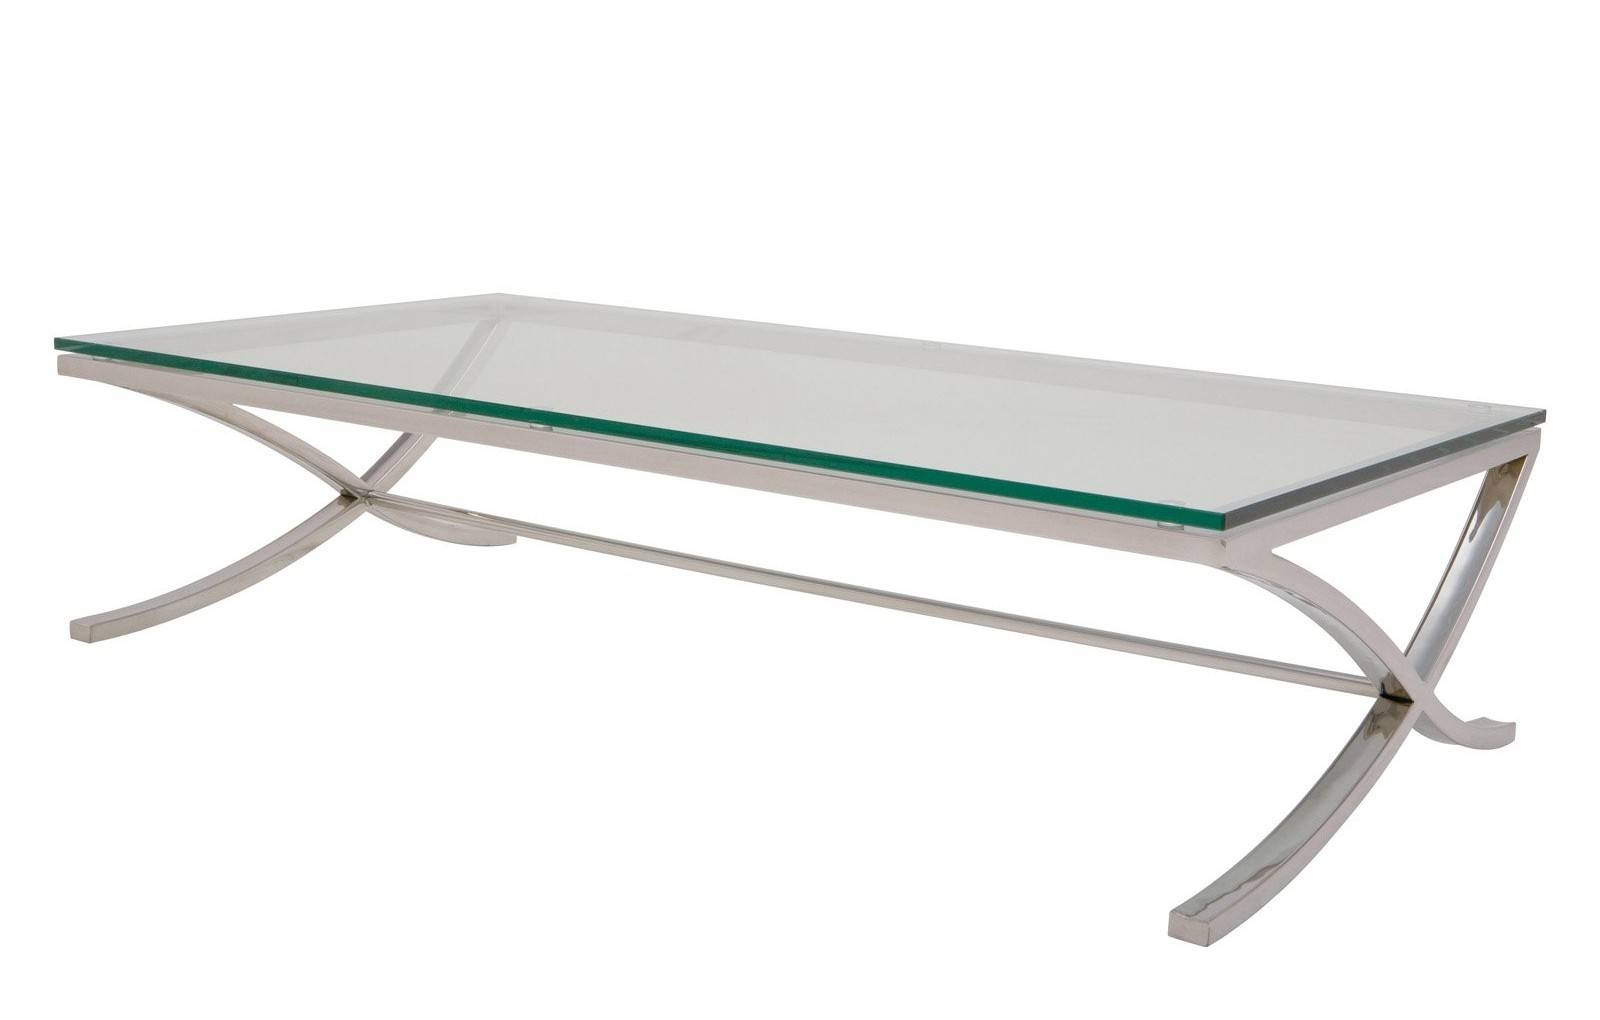 Coffee Table: Astounding Chrome And Glass Coffee Table Design intended for Simple Glass Coffee Tables (Image 12 of 30)